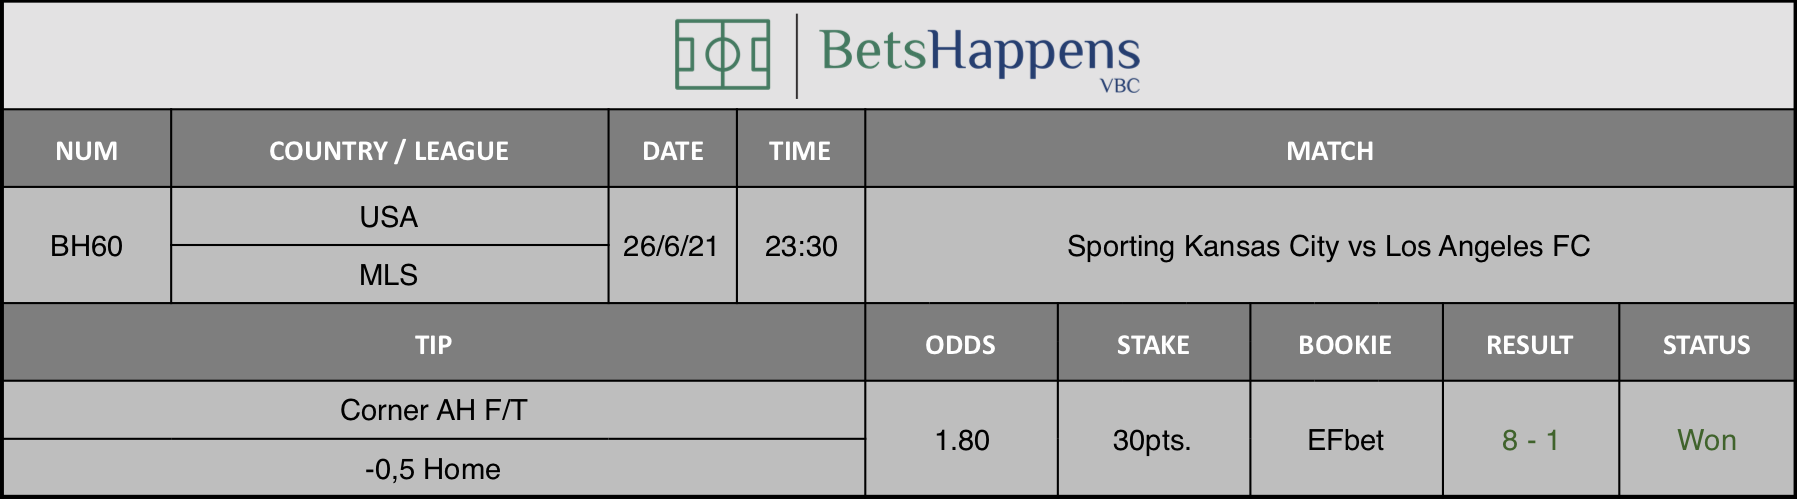 Results of our tip for the Sporting Kansas City vs Los Angeles FC match Corner AH F/T -0,5 Home is recommended.